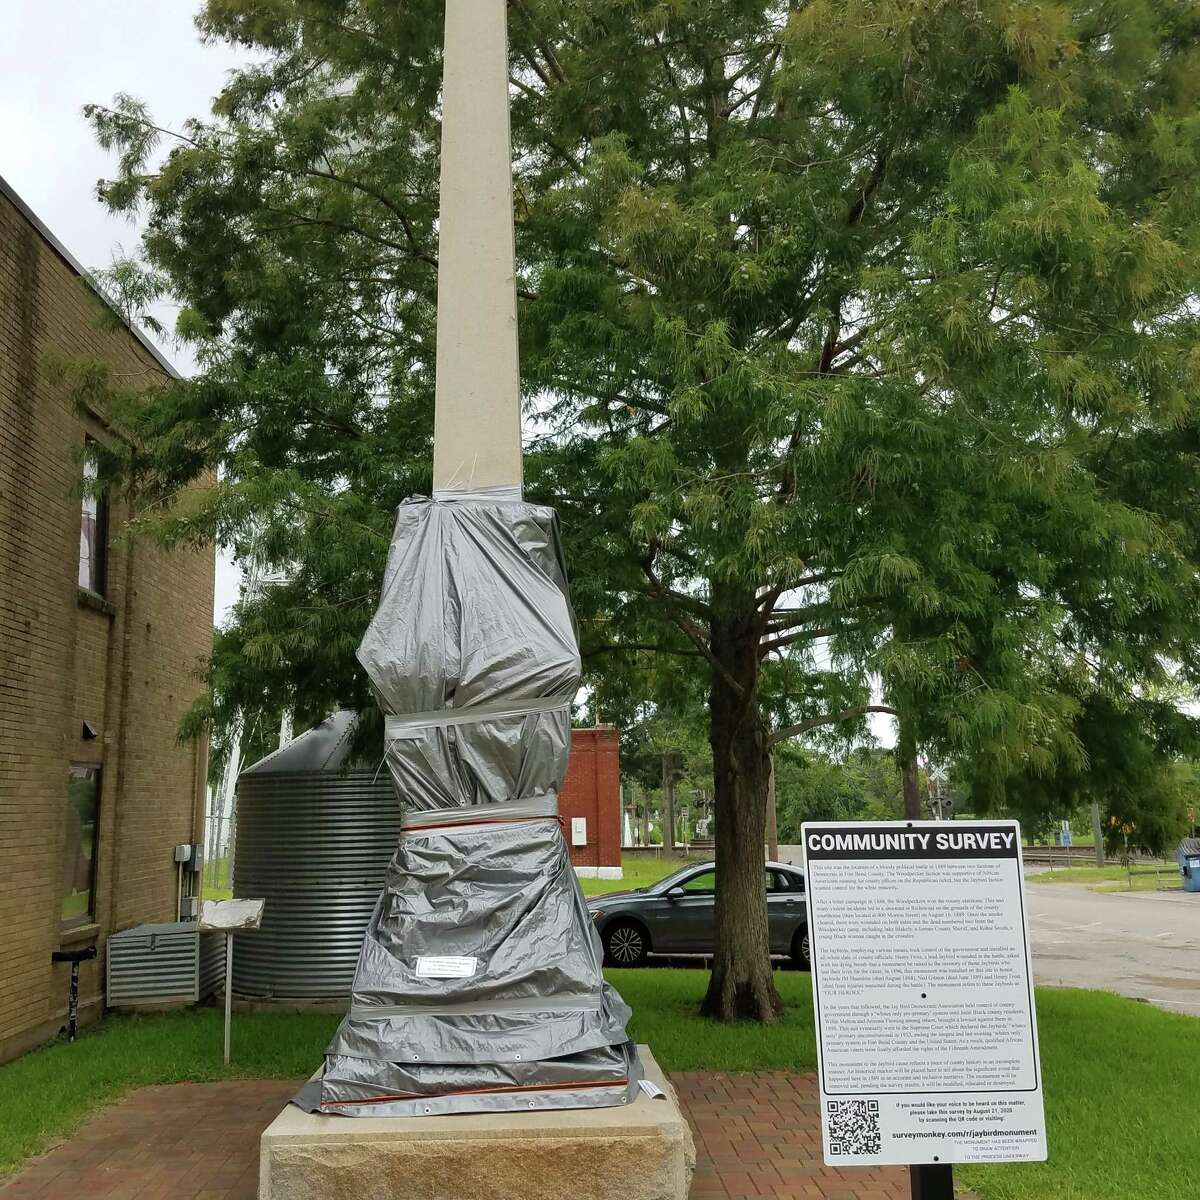 Activists pushing for the removal of the Jaybird monument in Richmond have covered the statue in a tarp and erected a sign petitioning for its removal.